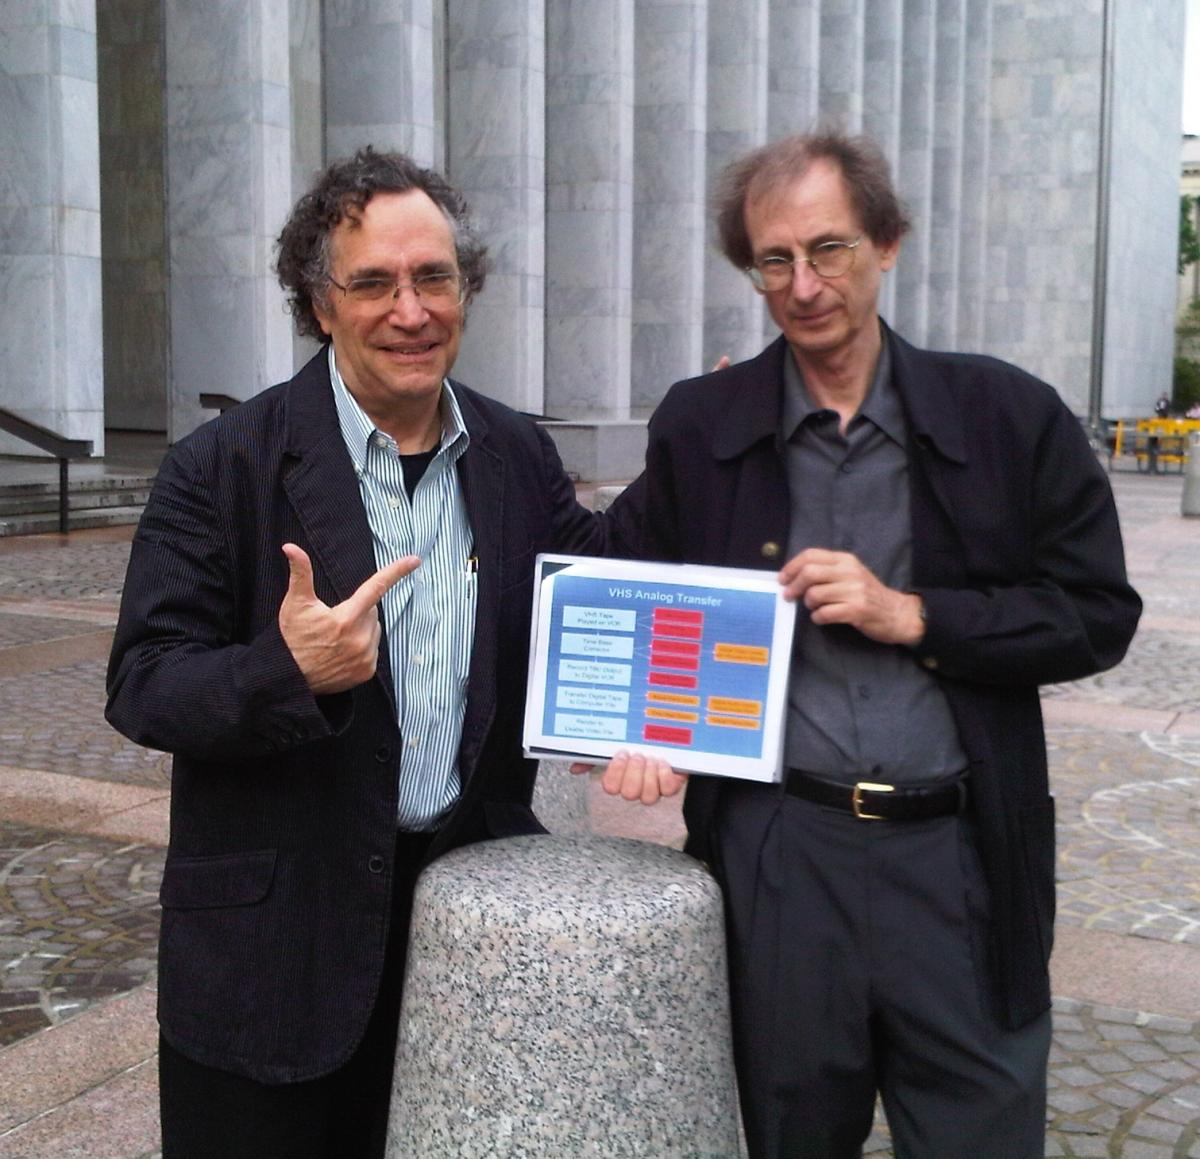 Gordon Quinn and Jim Morrisette of Kartemquin Films at the Library of Congress in May 2009